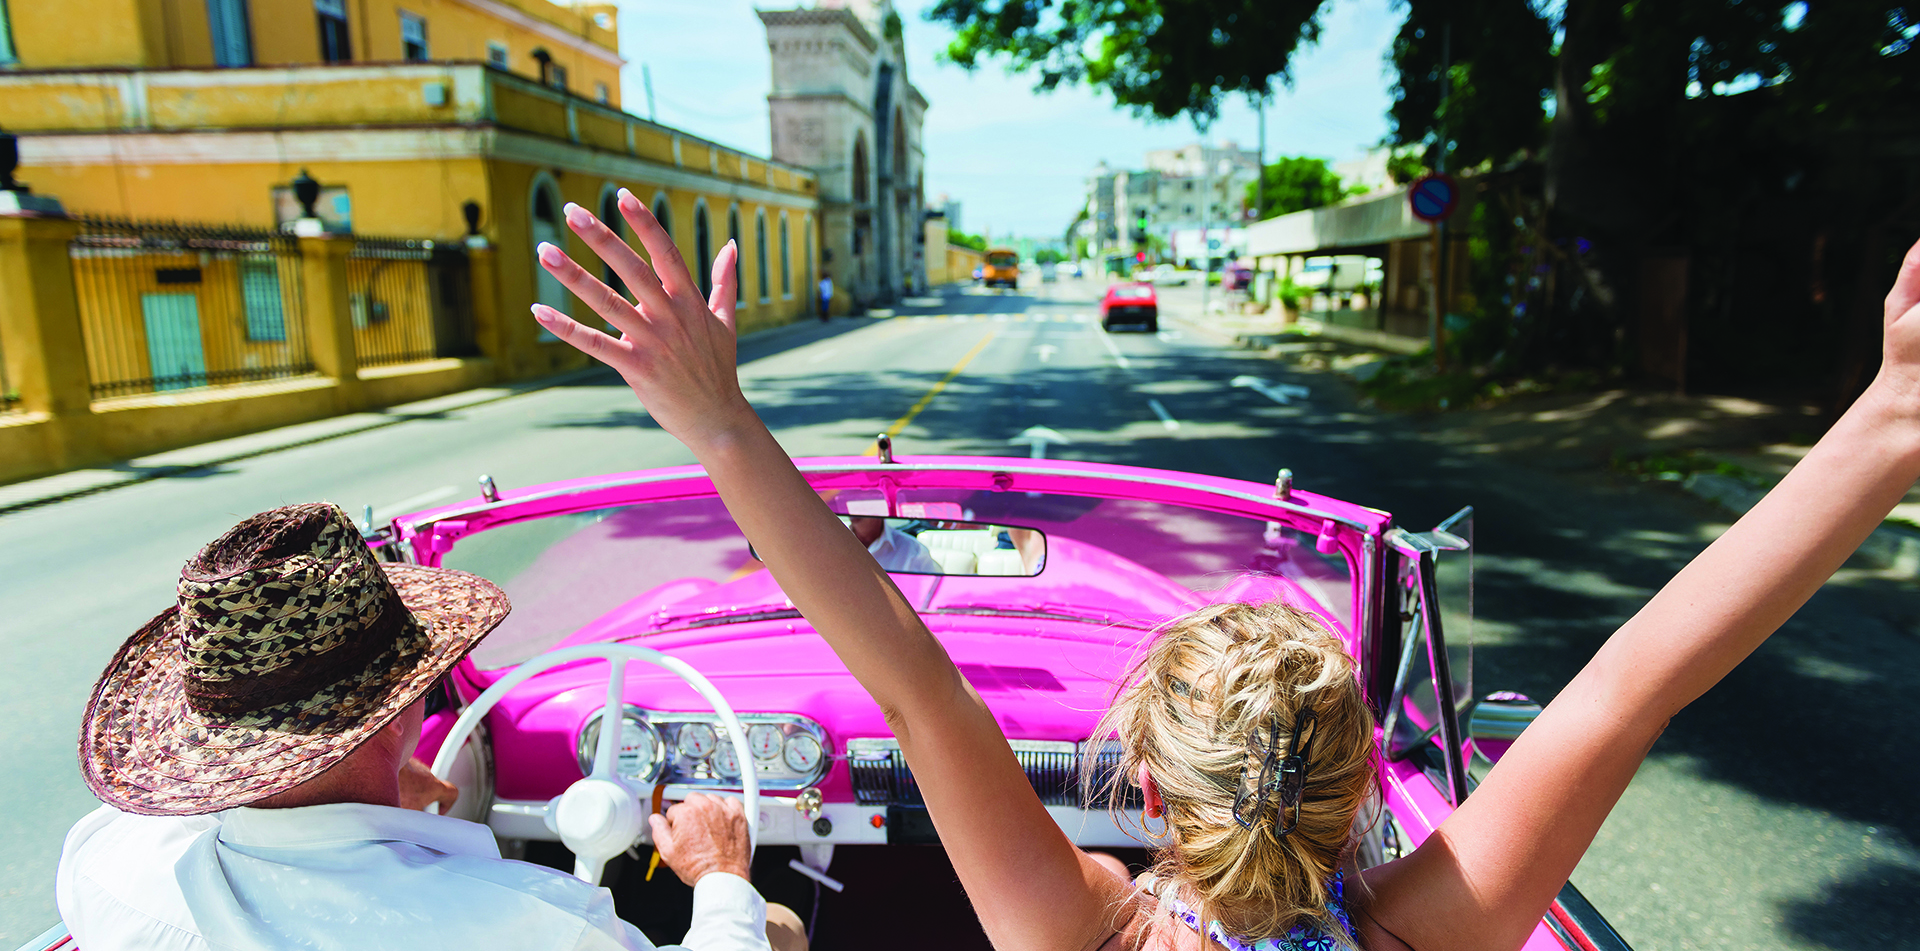 North America Caribbean Cuba classic convertible car pink woman fun drive local street - luxury vacation destinations